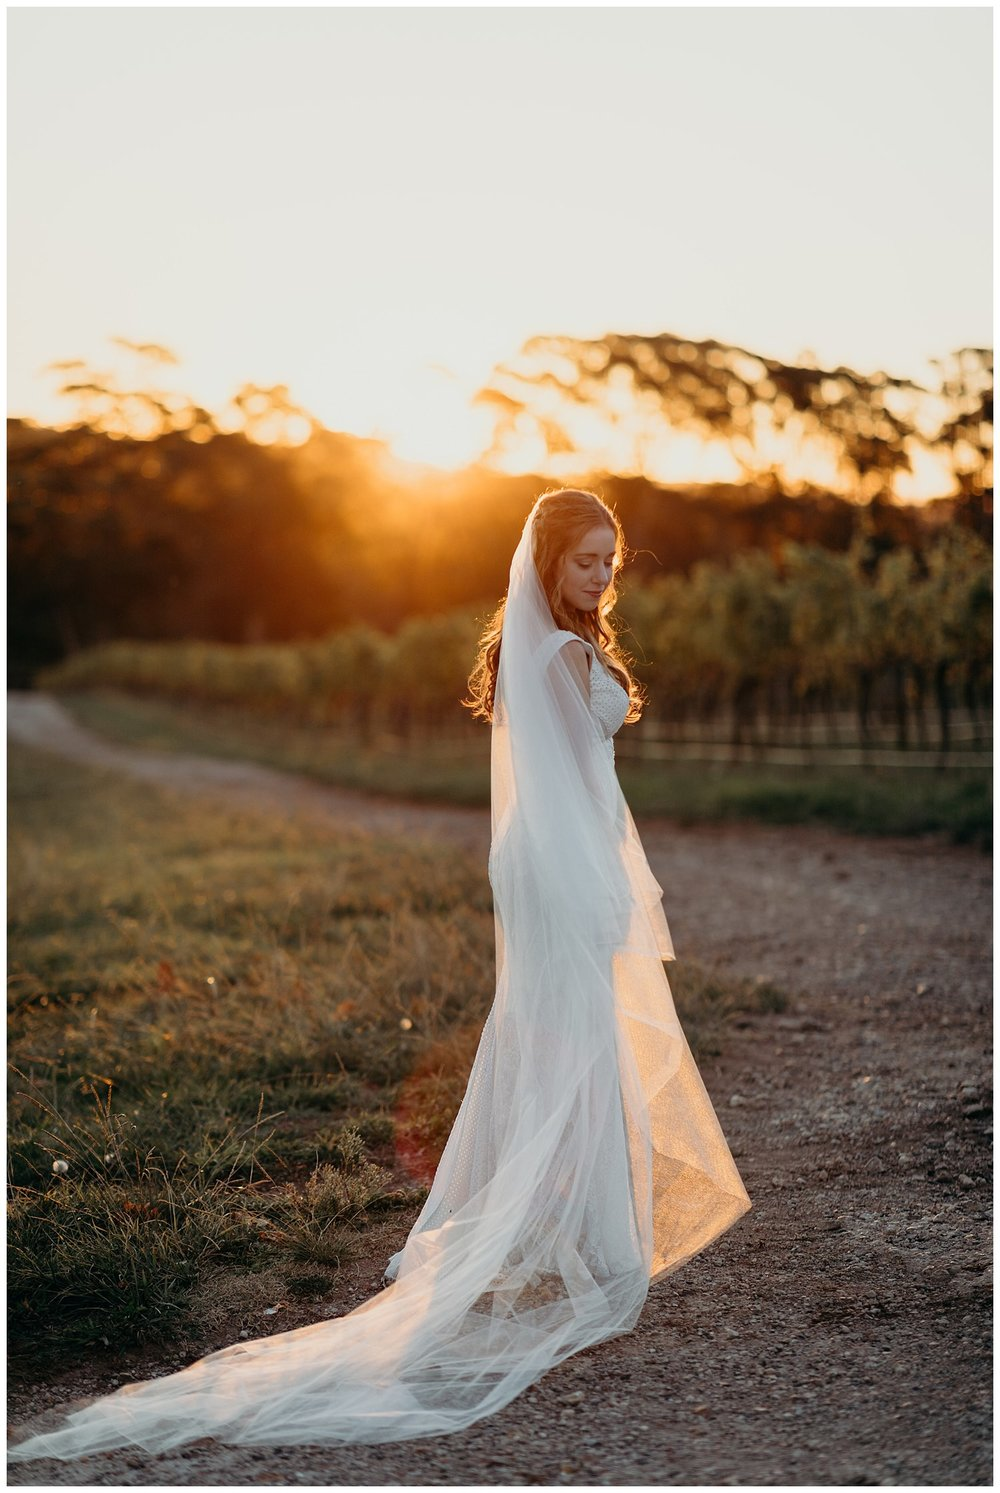 Bowral Southern Highlands Autumn Wedding - Mon Cheri Bridal dress at sunset